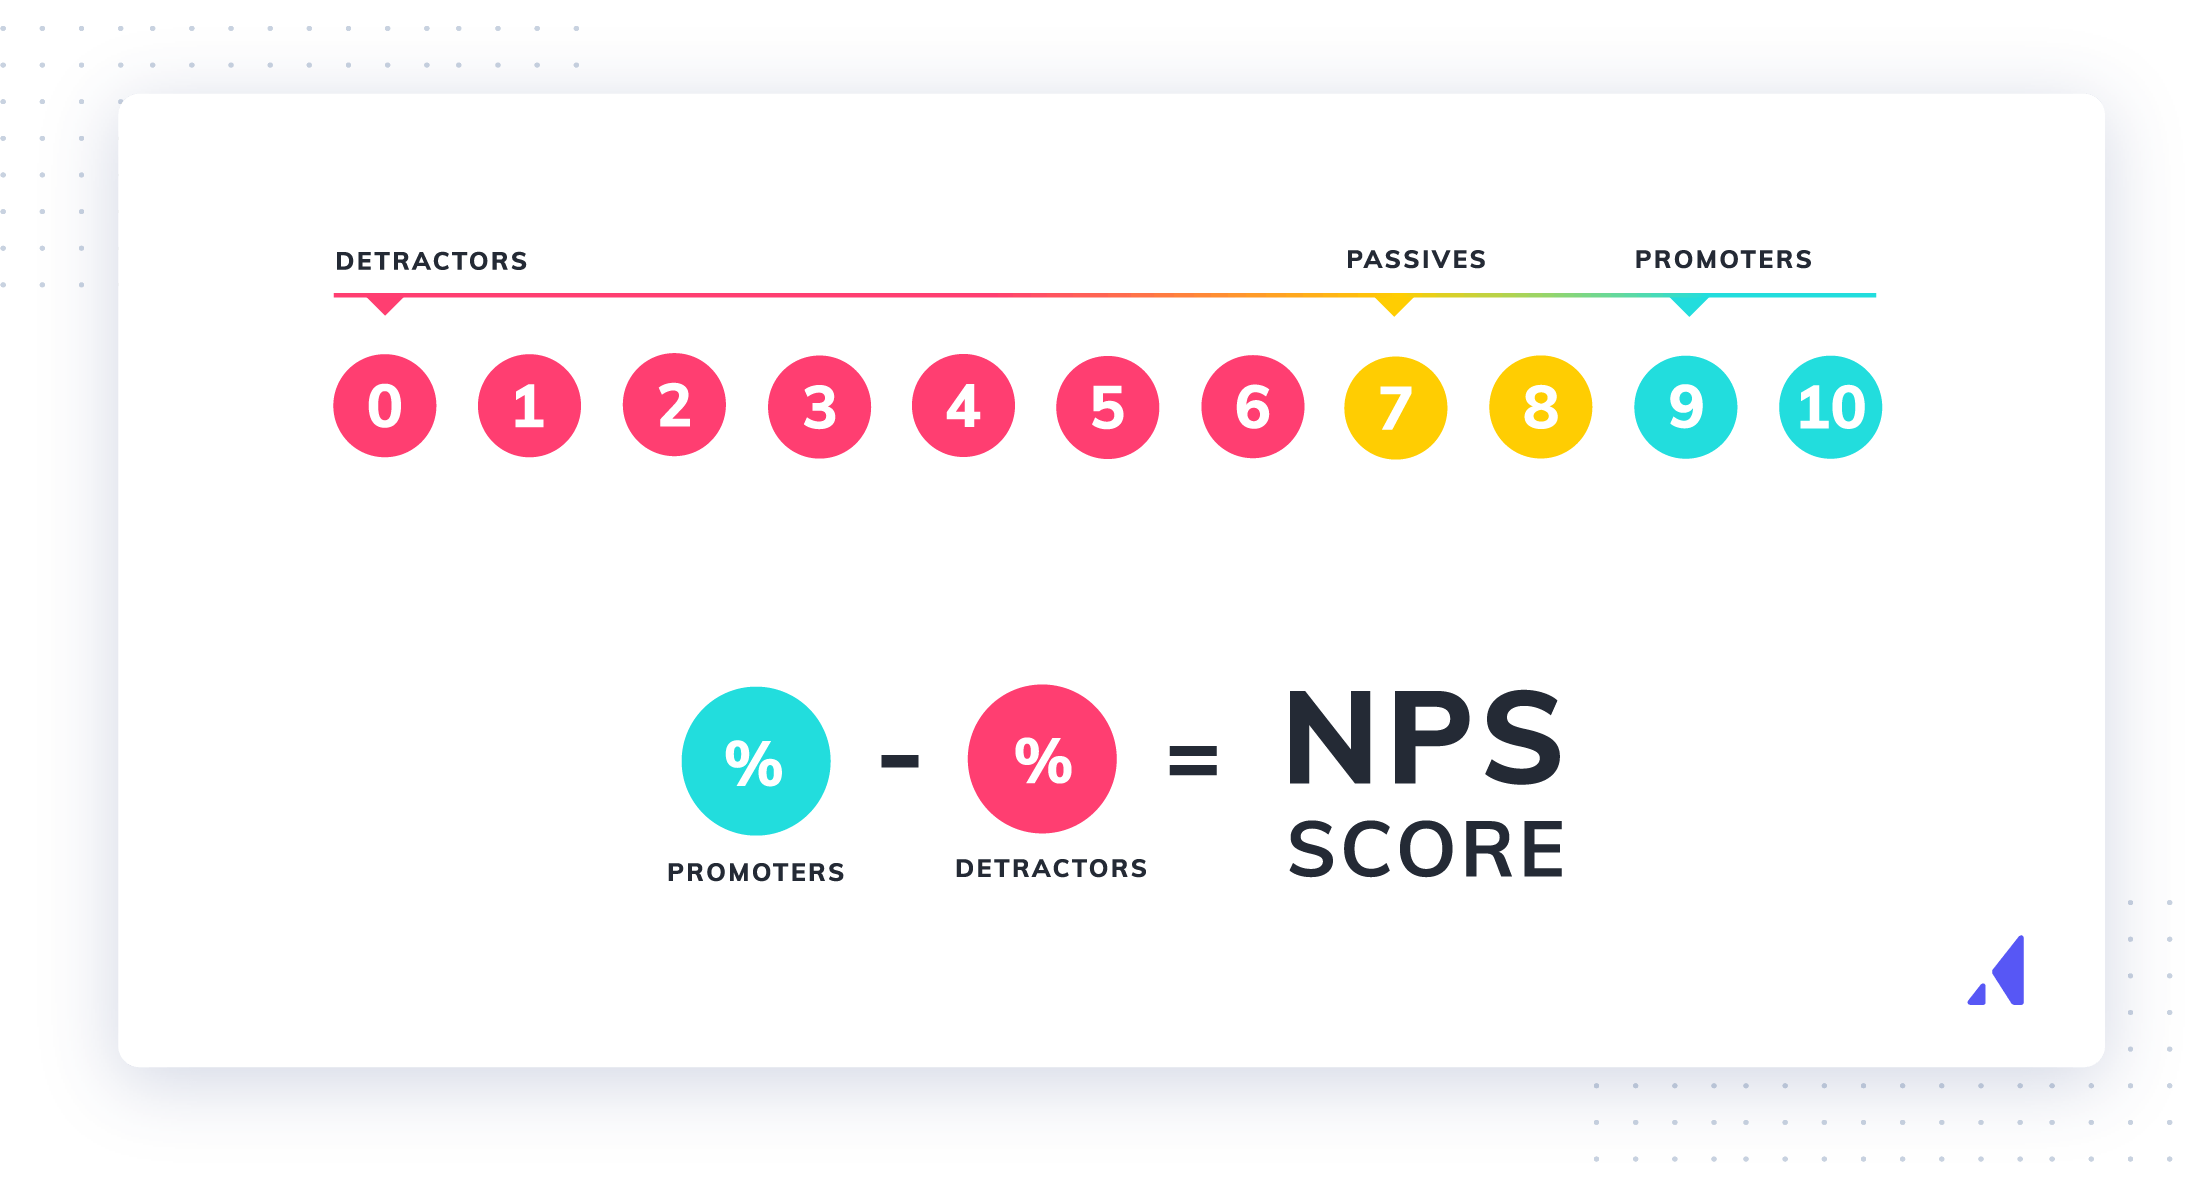 What is the NPS formula?  How is it calculated? NPS formula is the percent of promoters minus the percent of detractors.